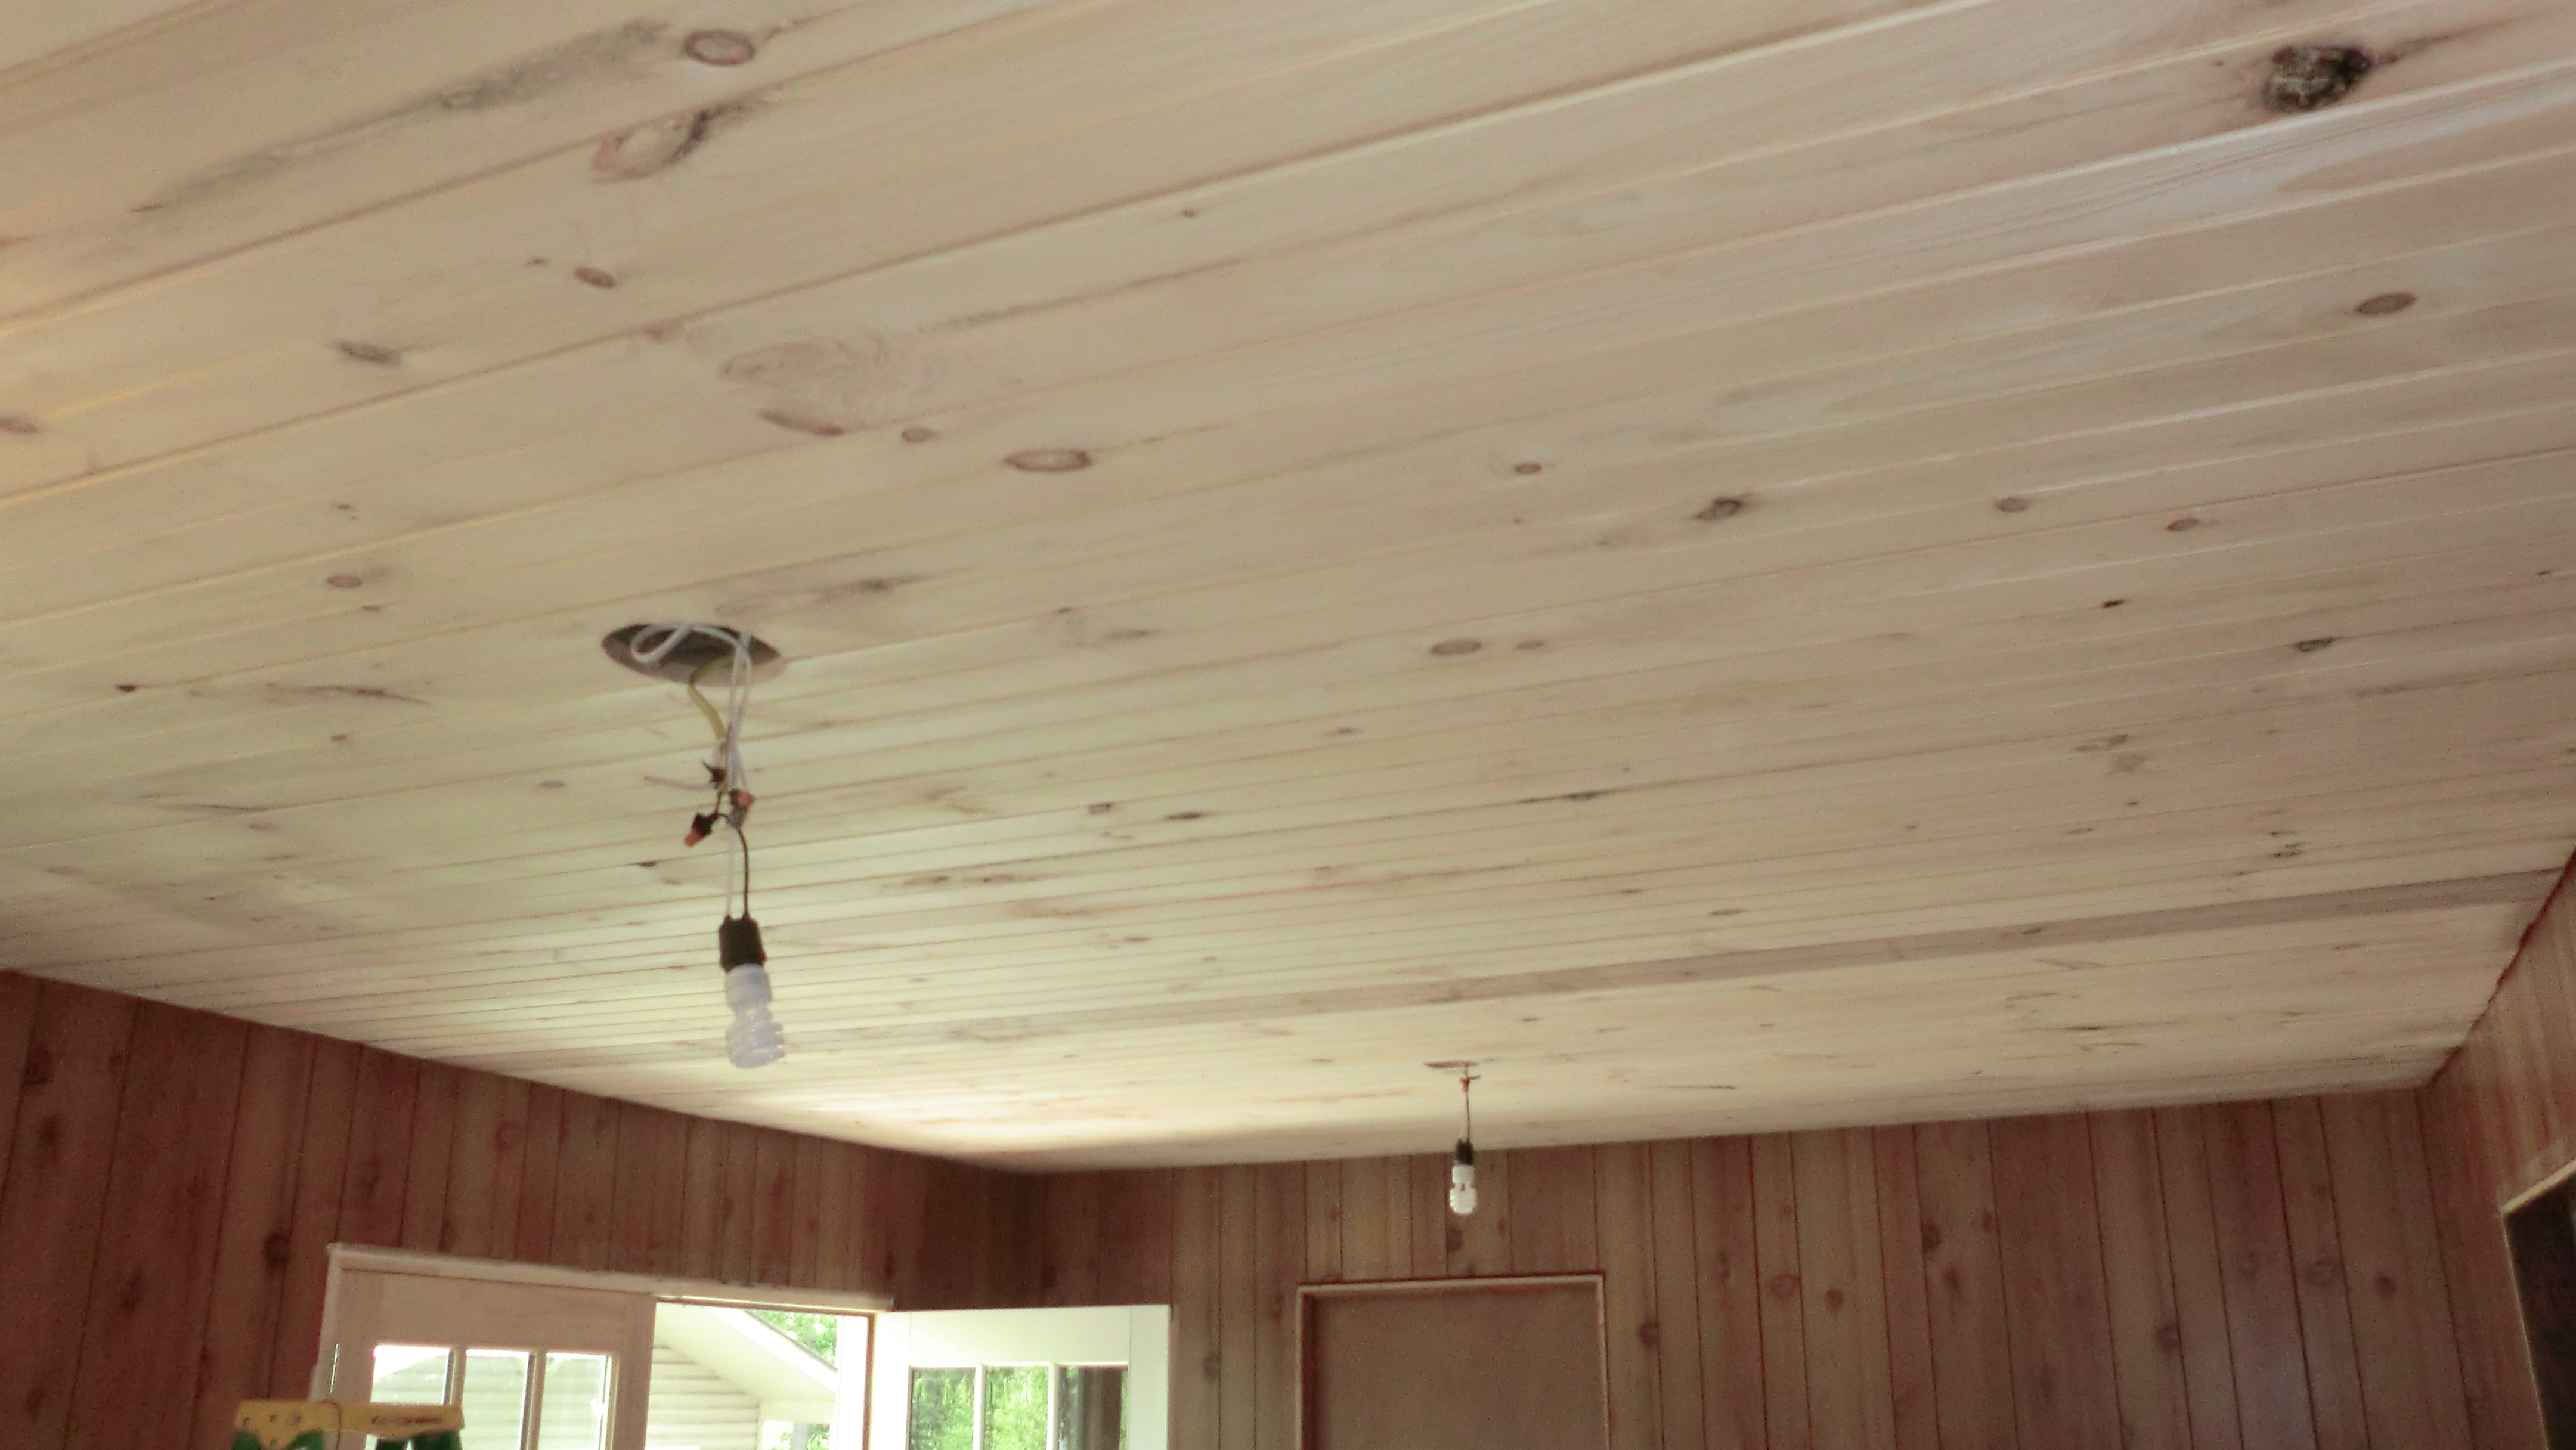 How To Fix Celotex Ceiling Tiles